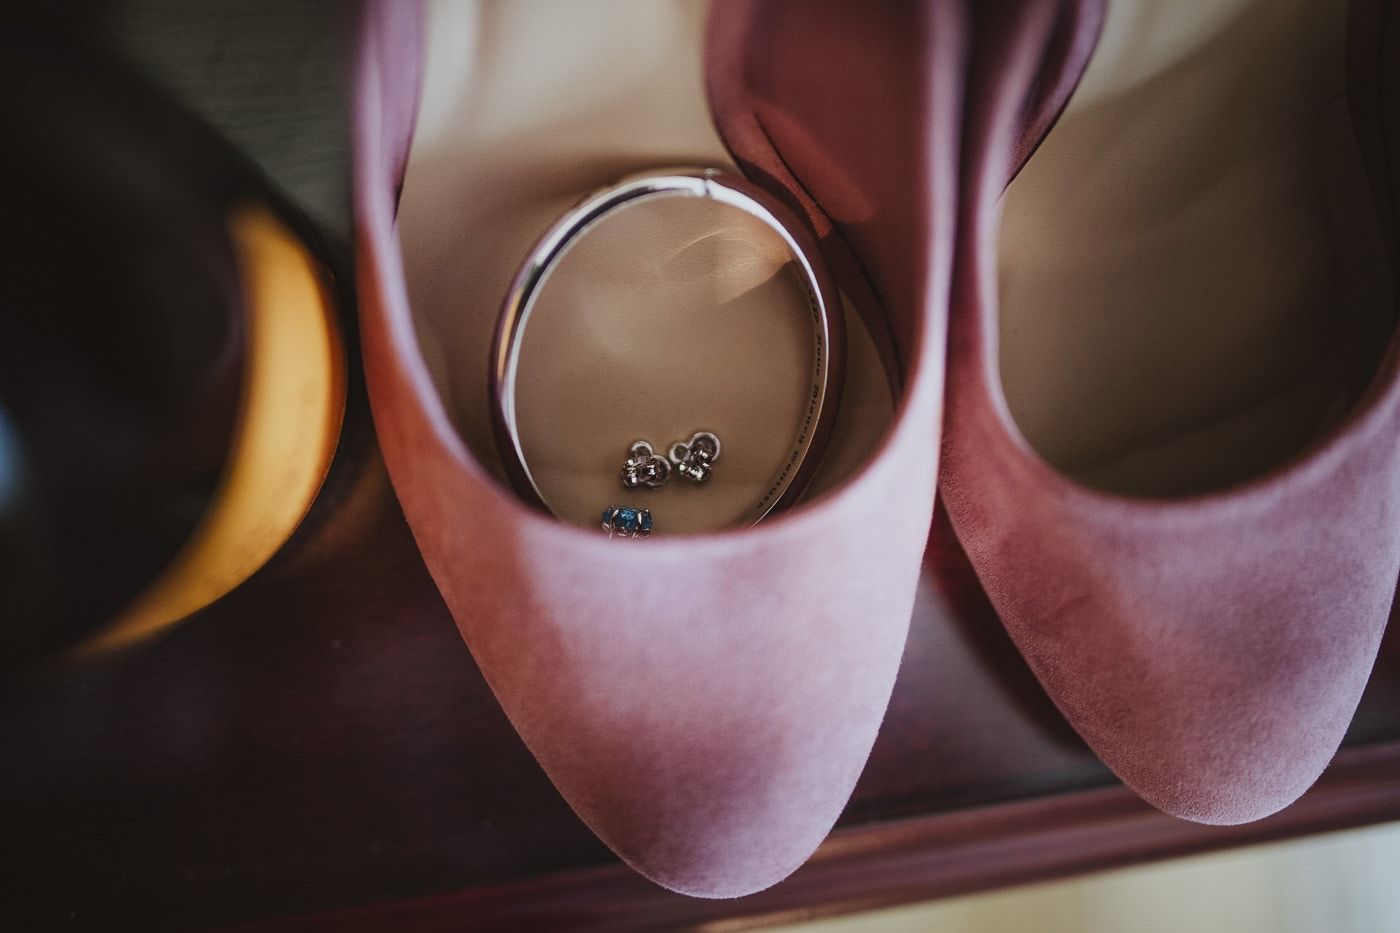 Jewellery ready in shoes for Cumbria wedding by Joshua Wyborn